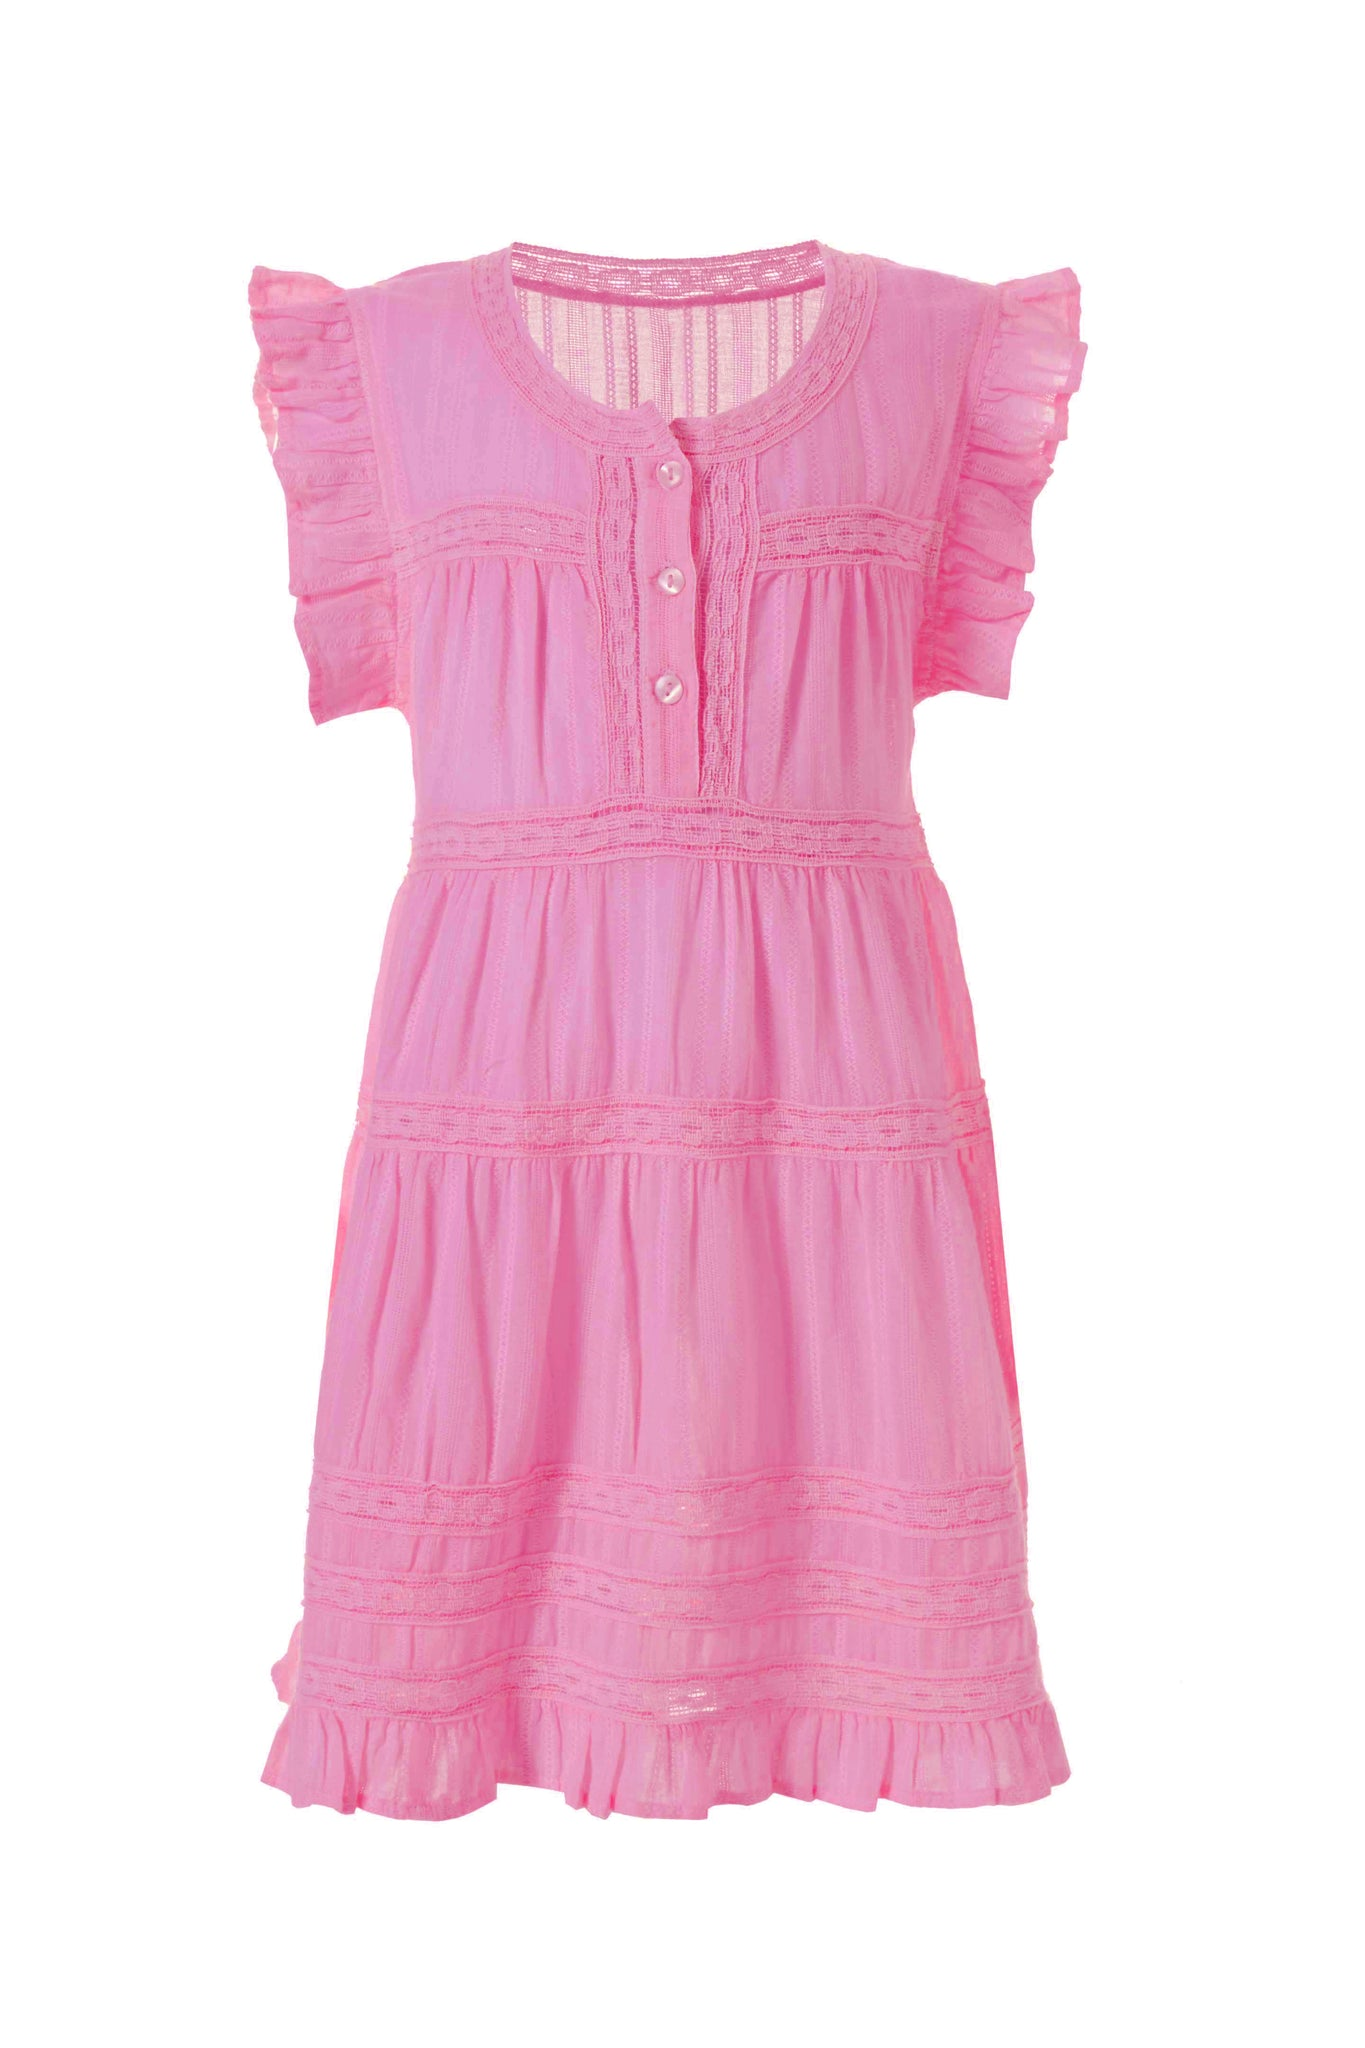 Baby Rebekah Rose Smock Dress